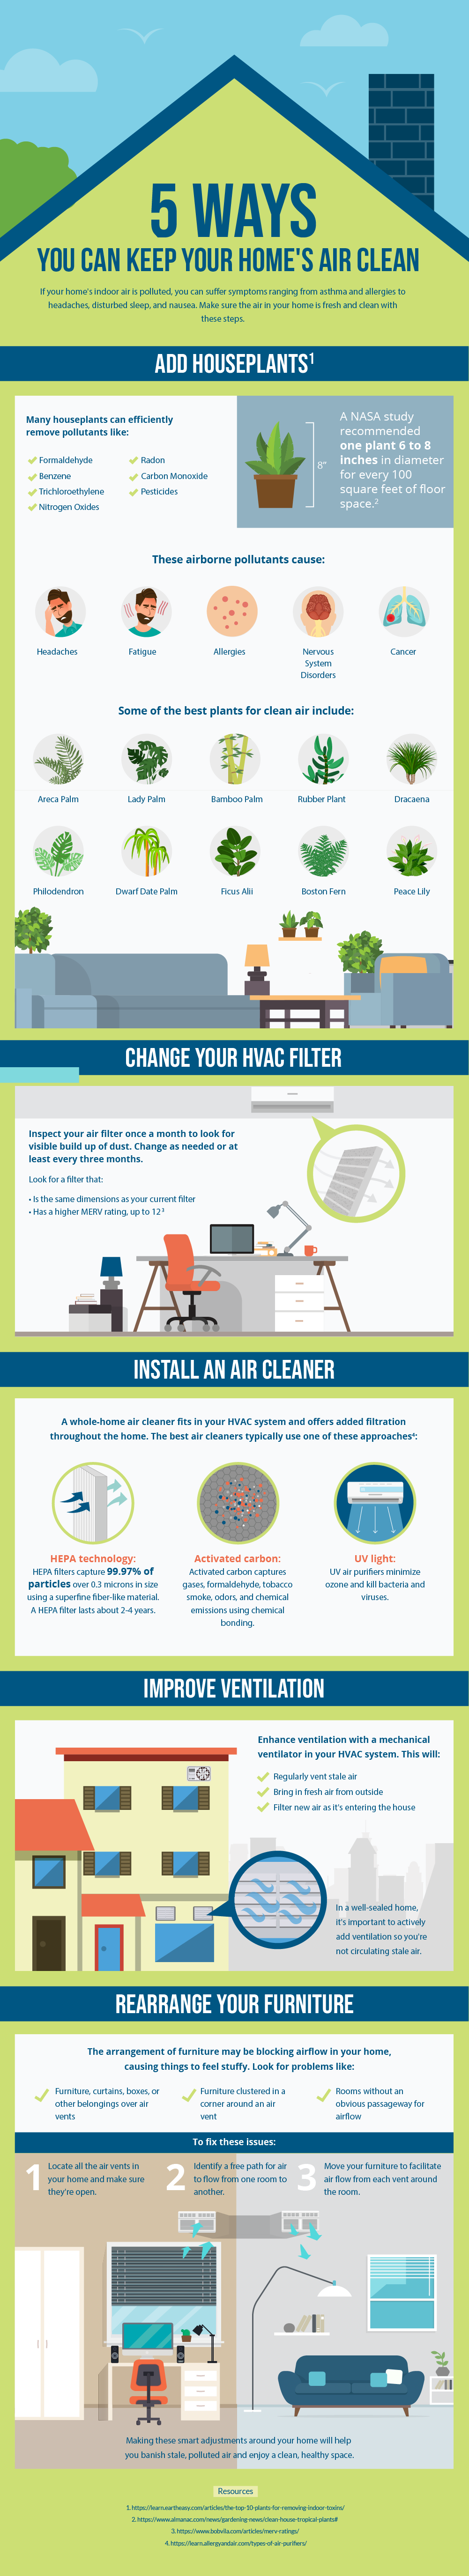 5 Ways You Can Keep Your Home's Air Clean - Infographic